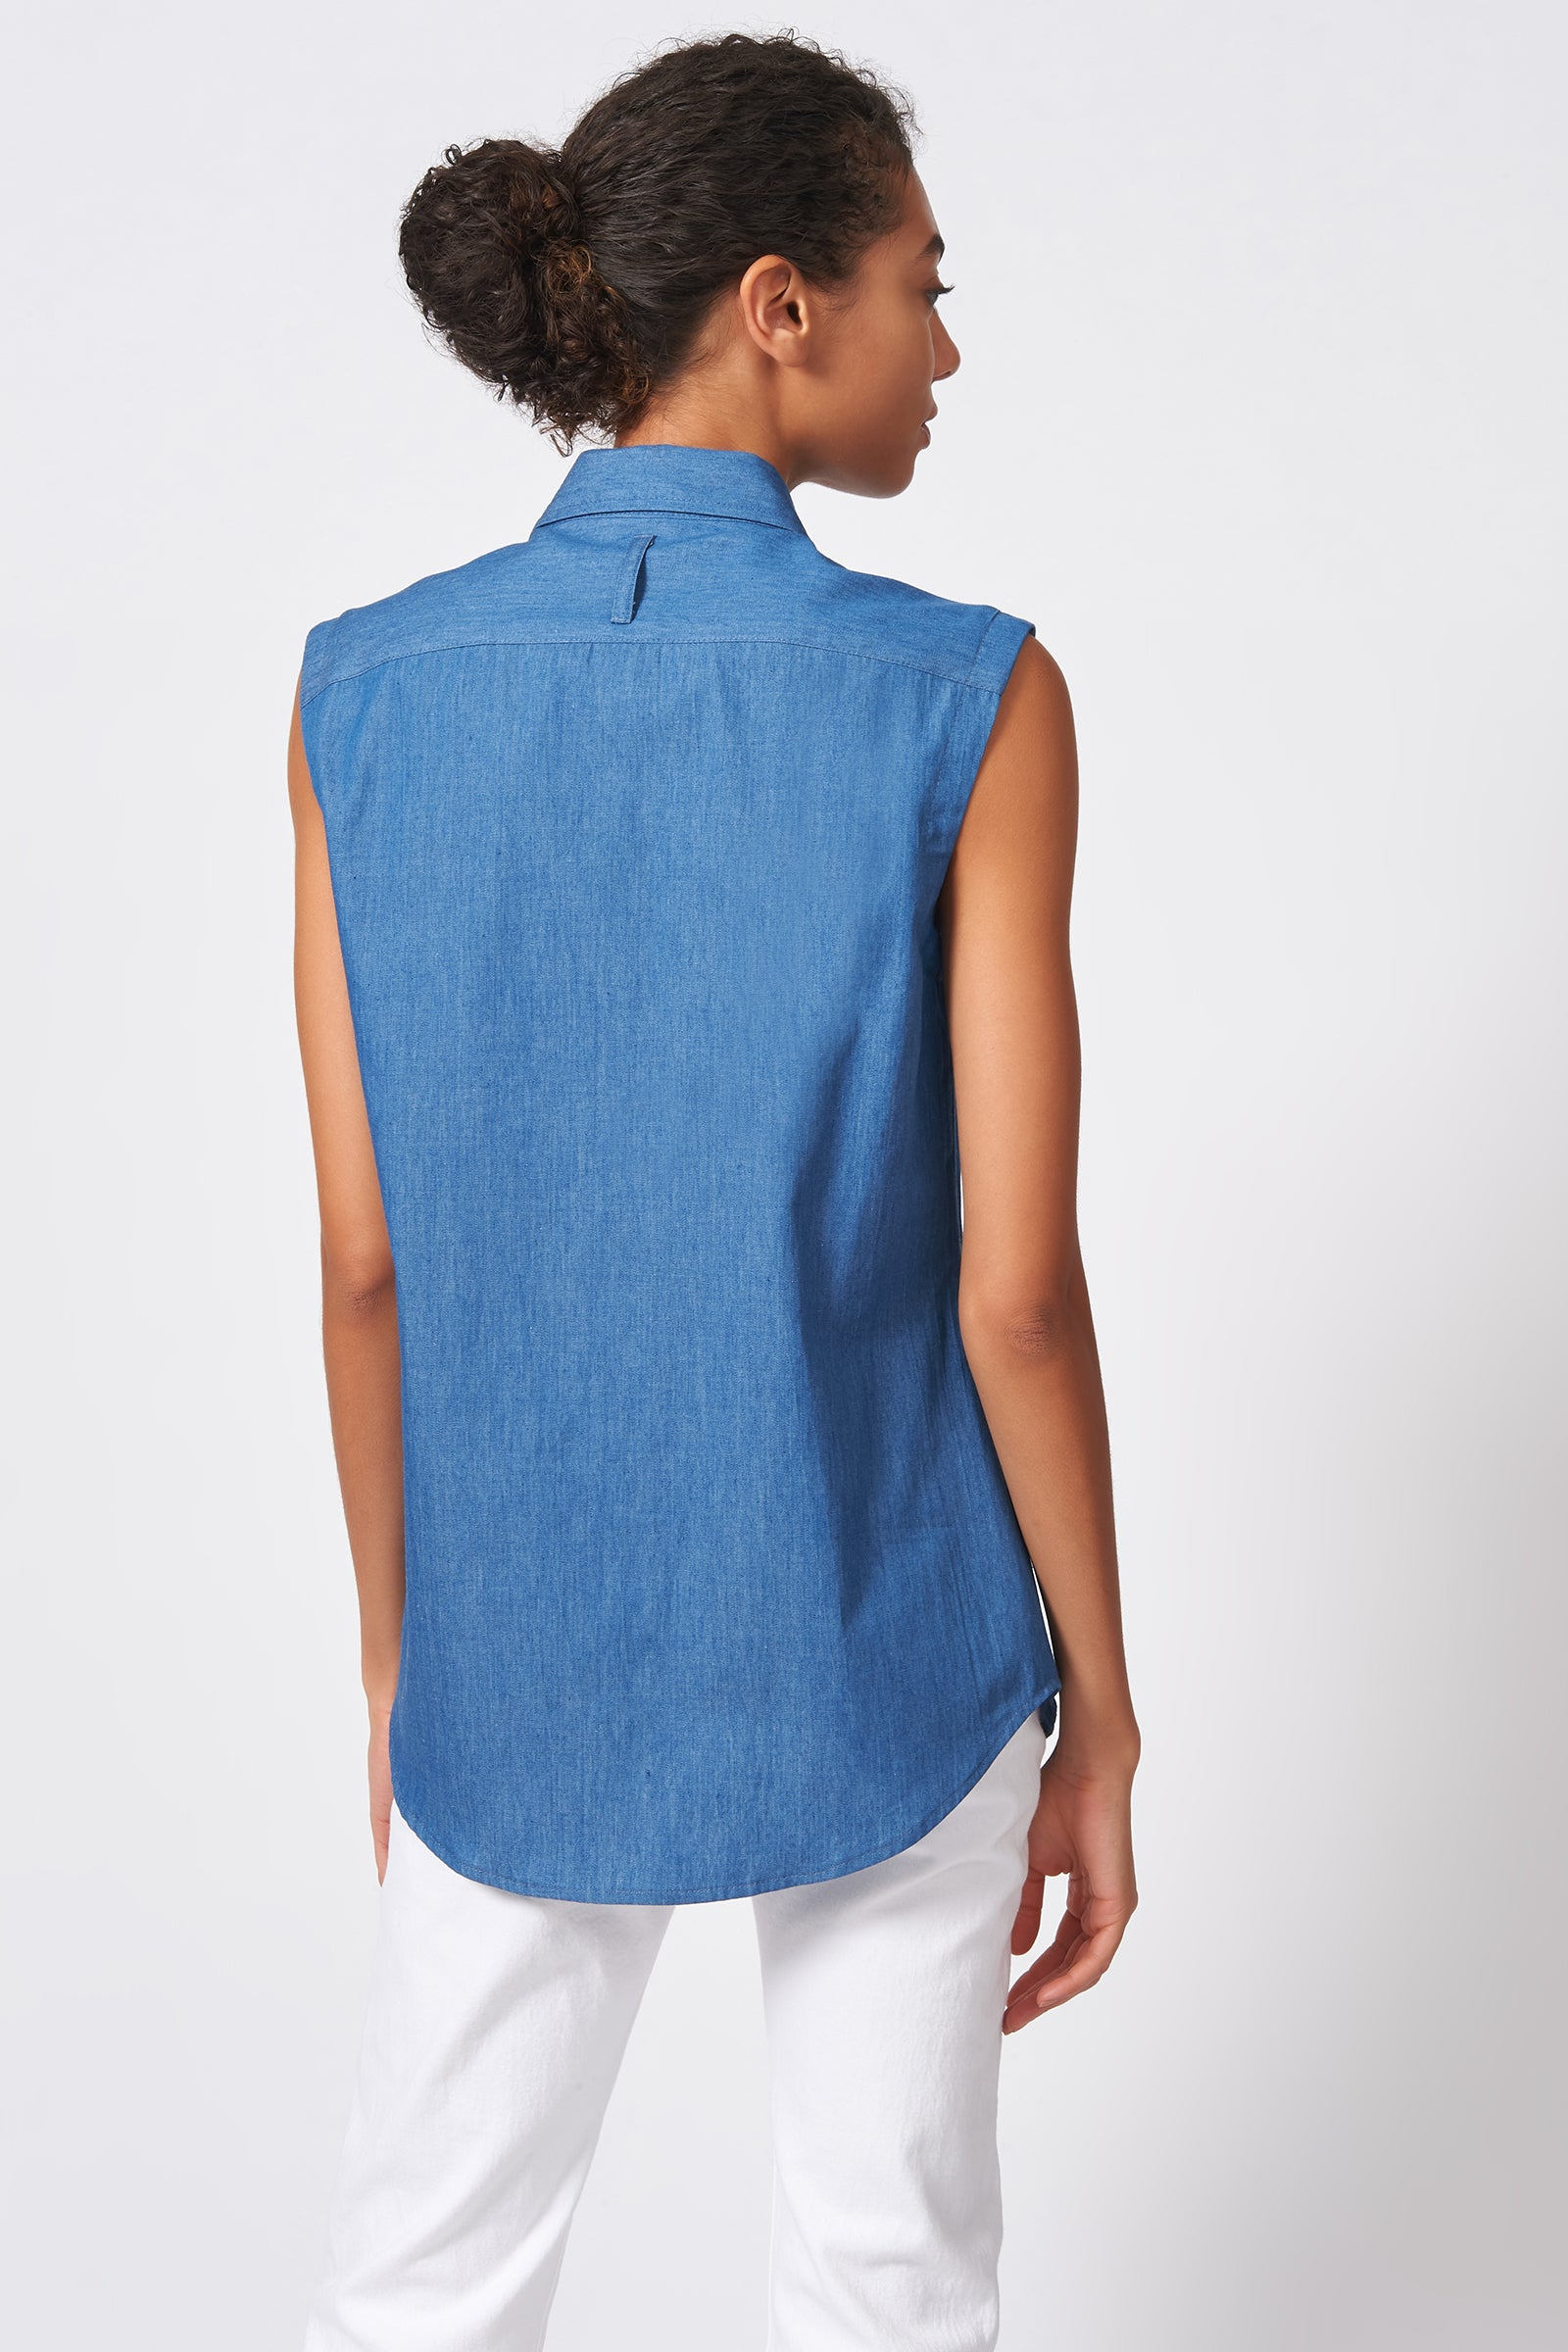 Kal Rieman Sleeveless Collared Shirt in Light Indigo on Model Full Front View